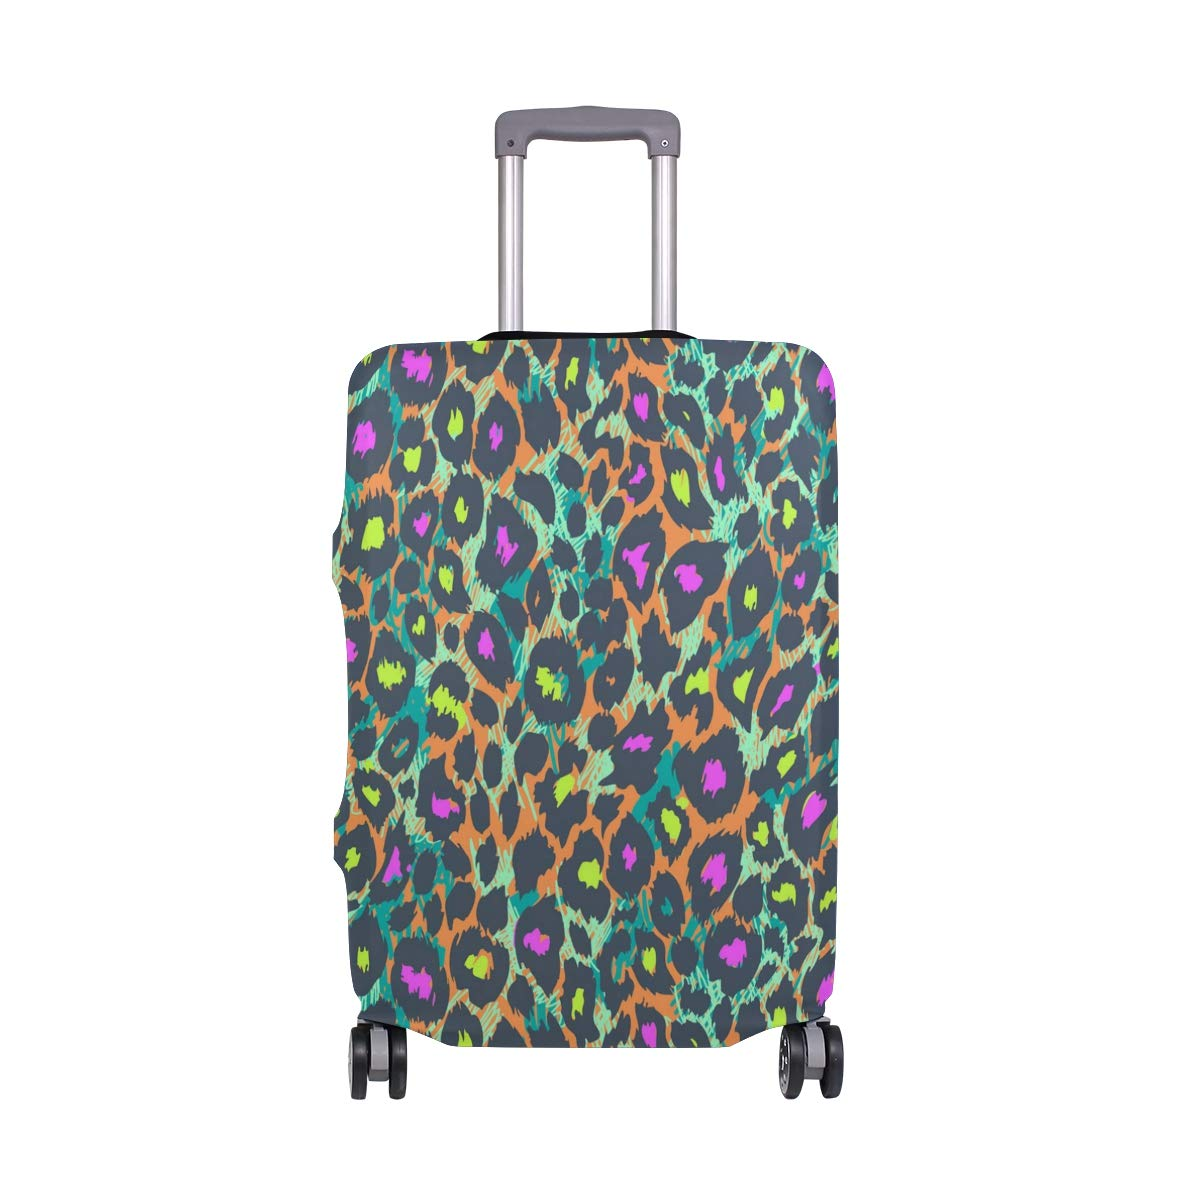 Baby Colorful Leopard Print Pink Traveler Lightweight Rotating Luggage Protector Case Can Carry With You Can Expand Travel Bag Trolley Rolling Luggage Protector Case